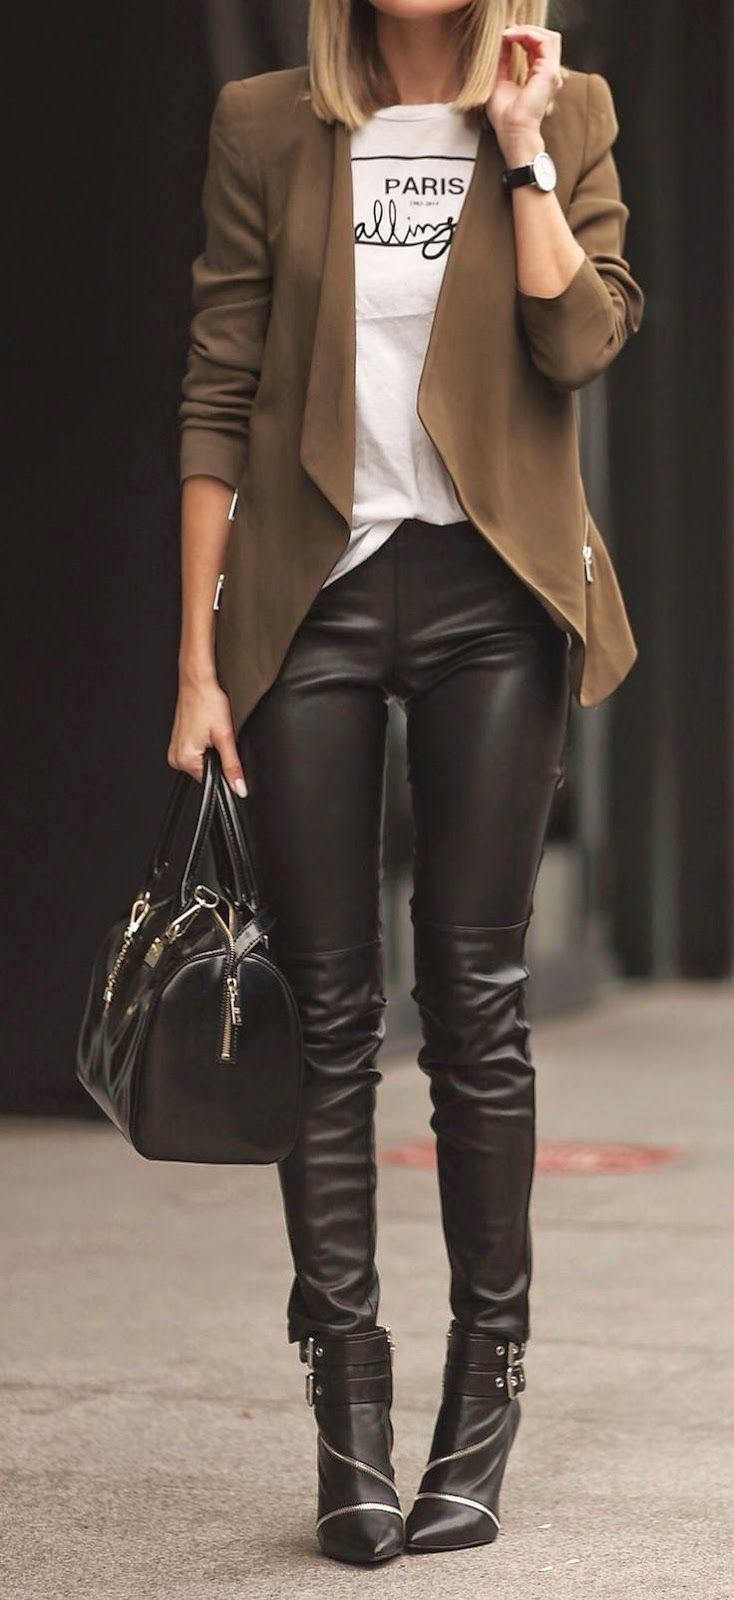 Black Leather Look Moda Ropa Mujer Y Restocked Estilo Leggings Zoe wa1Utw